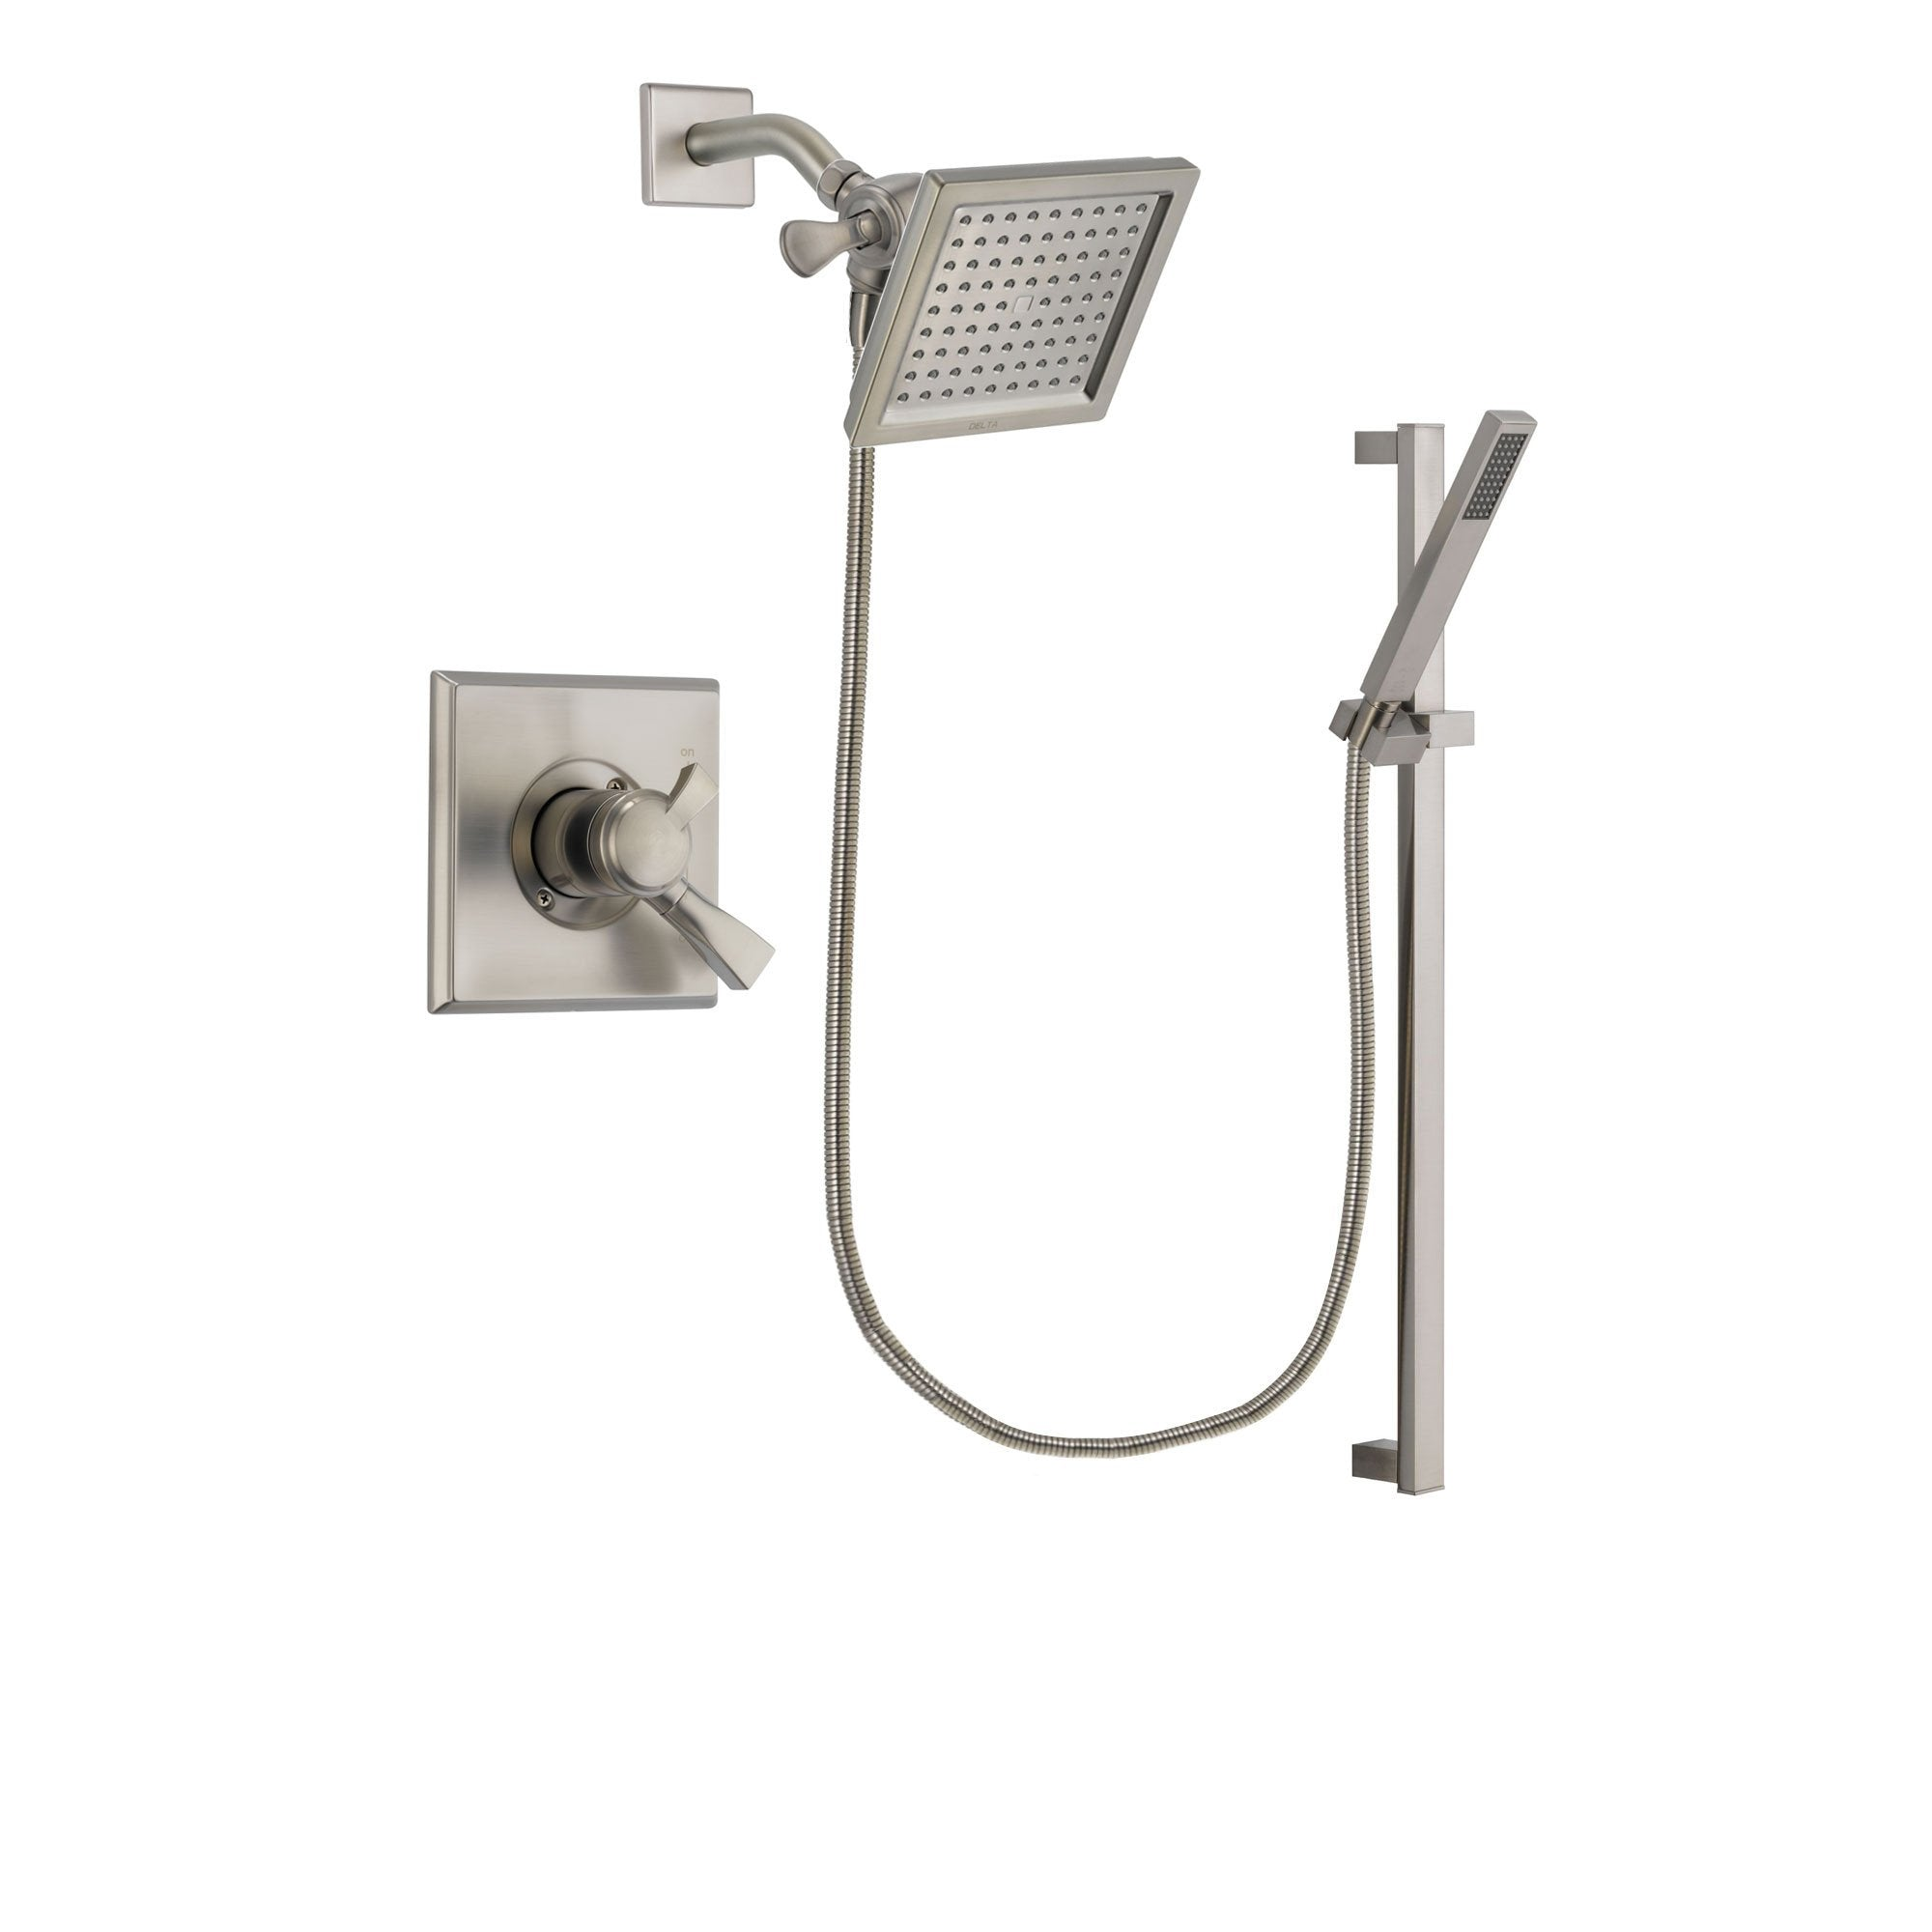 Delta Dryden Stainless Steel Finish Shower Faucet System w/ Hand Spray DSP2358V